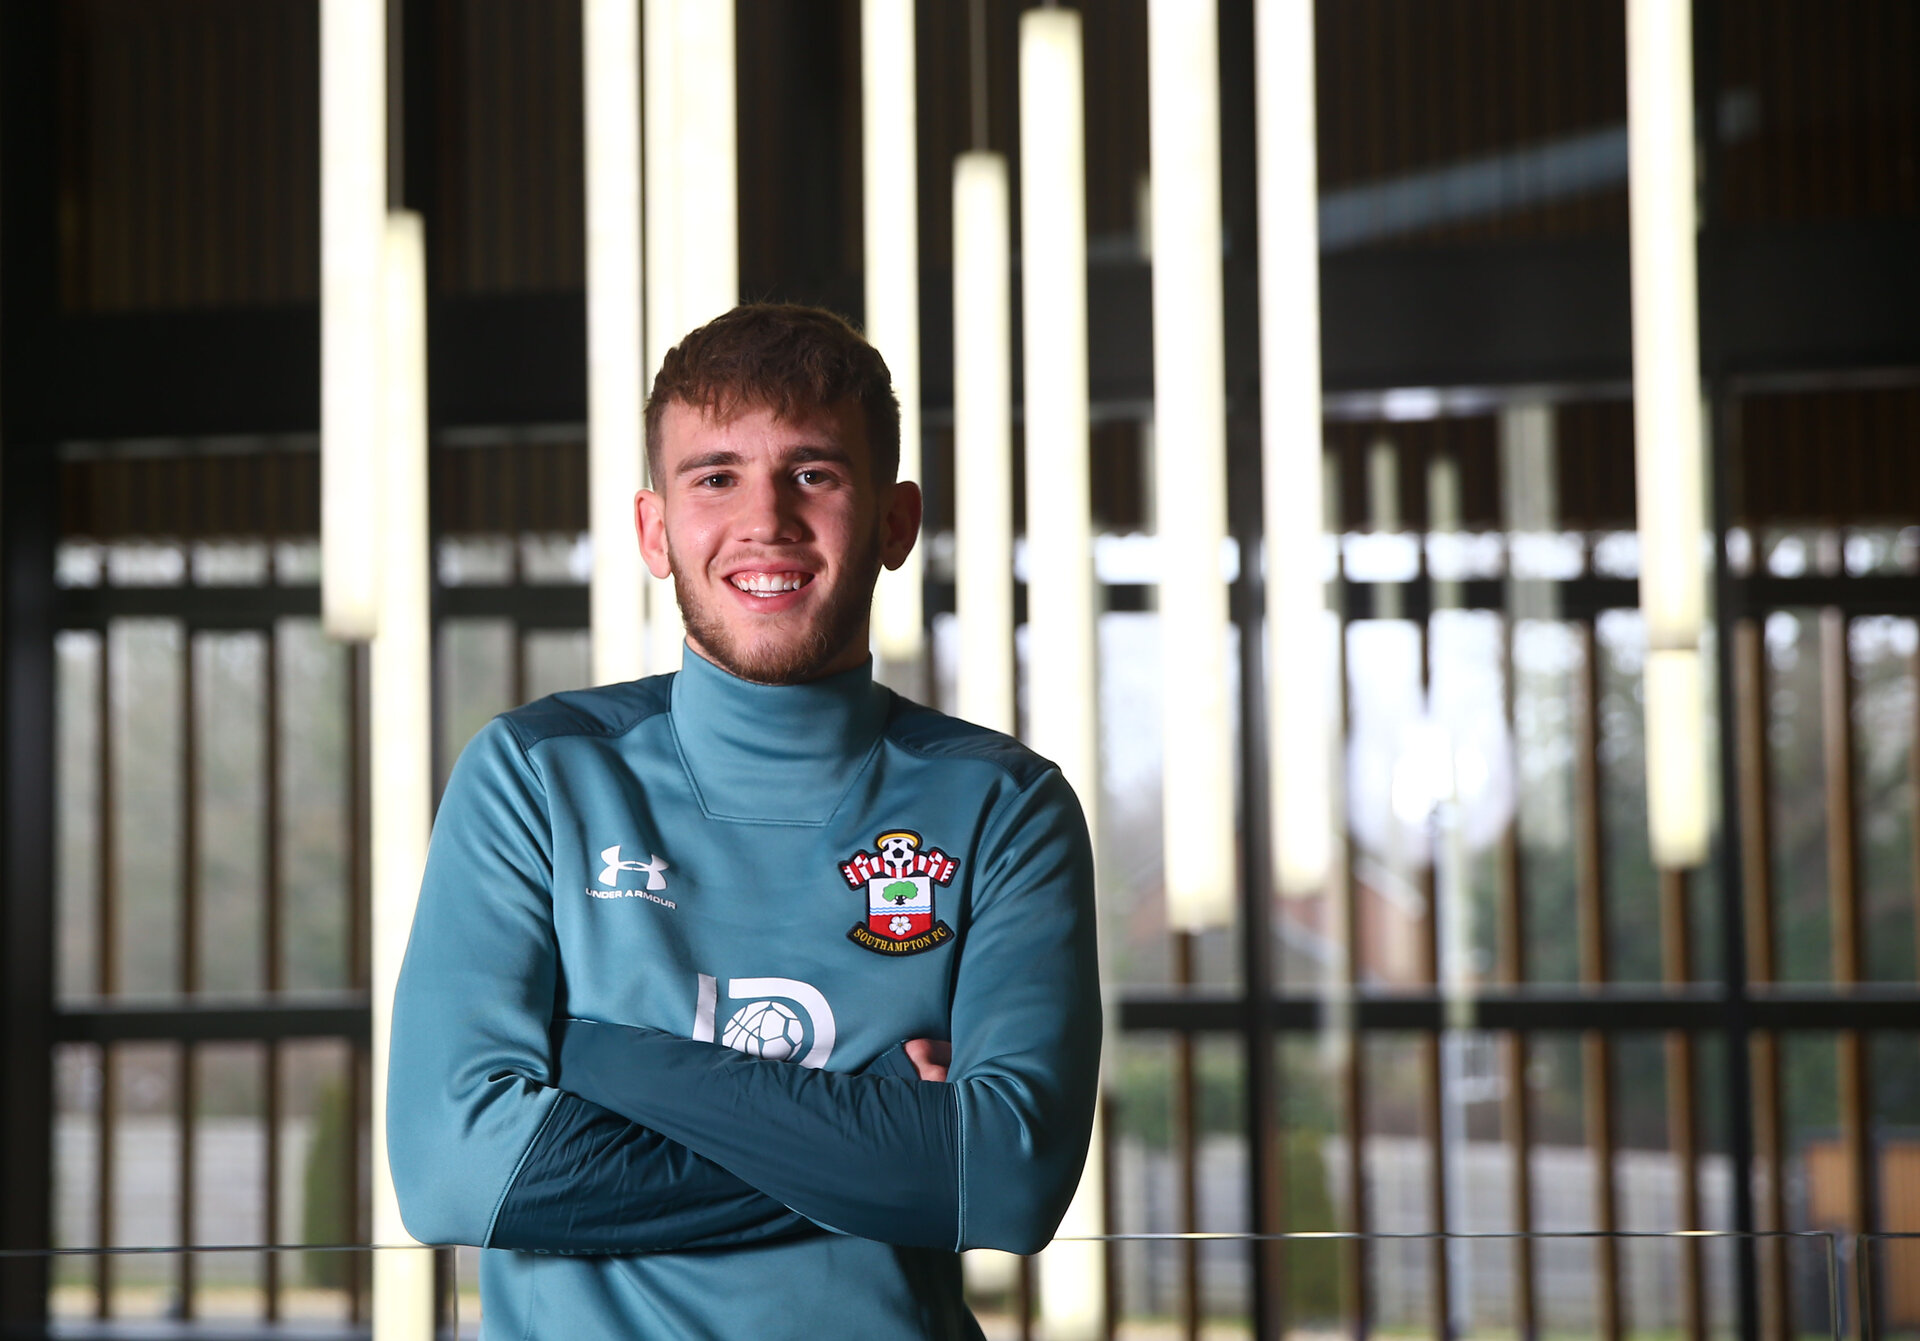 SOUTHAMPTON, ENGLAND - JANUARY 22: Jake Vokins of Southampton FC pictured for the Saints match day magazine at the Staplewood Campus on January 22, 2020 in Southampton, England. (Photo by Isabelle Field/Southampton FC via Getty Images)